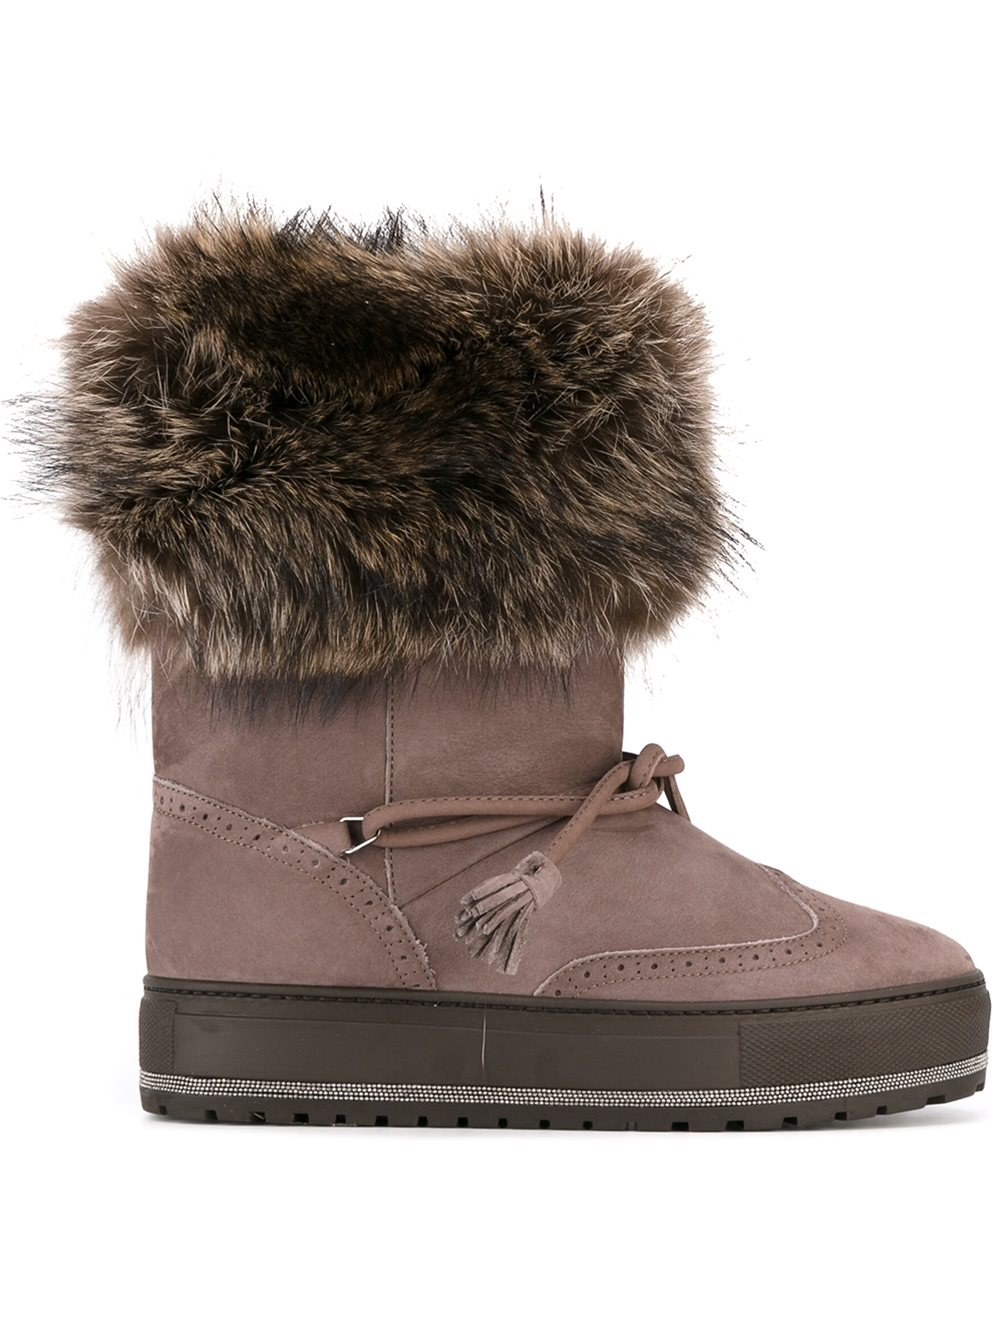 Best Snow Boots Winter - Snow Boots You Can Wear All Day